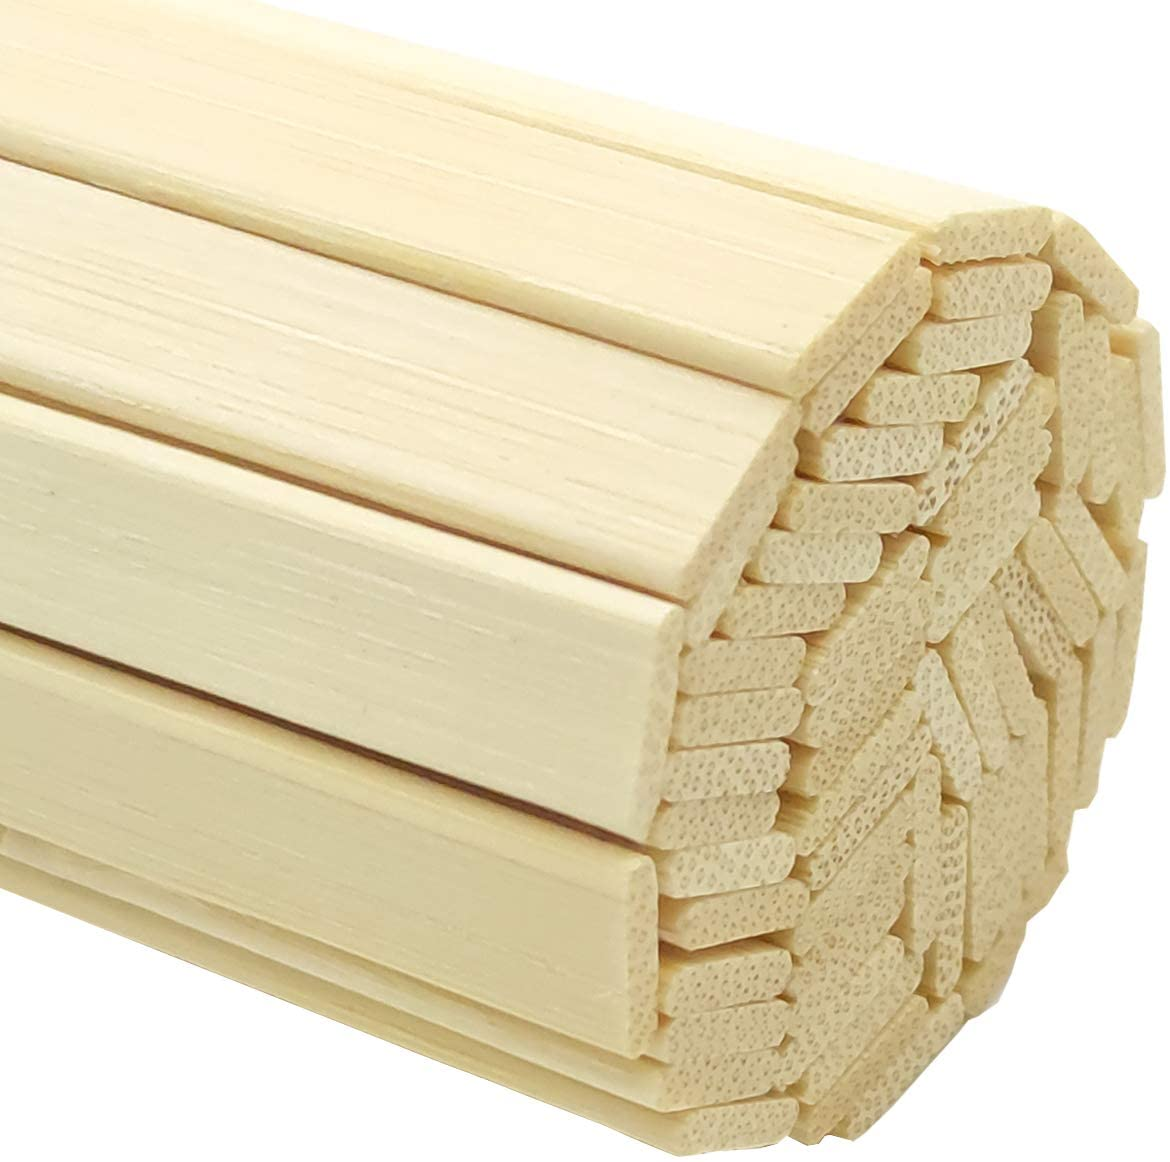 Worown 120 pcs 15.7 Inch Strong Natural Bamboo Sticks, Wooden Craft Sticks, Extra Long Sticks, Wood Strips for Craft Projects, 3/8 Inch Width